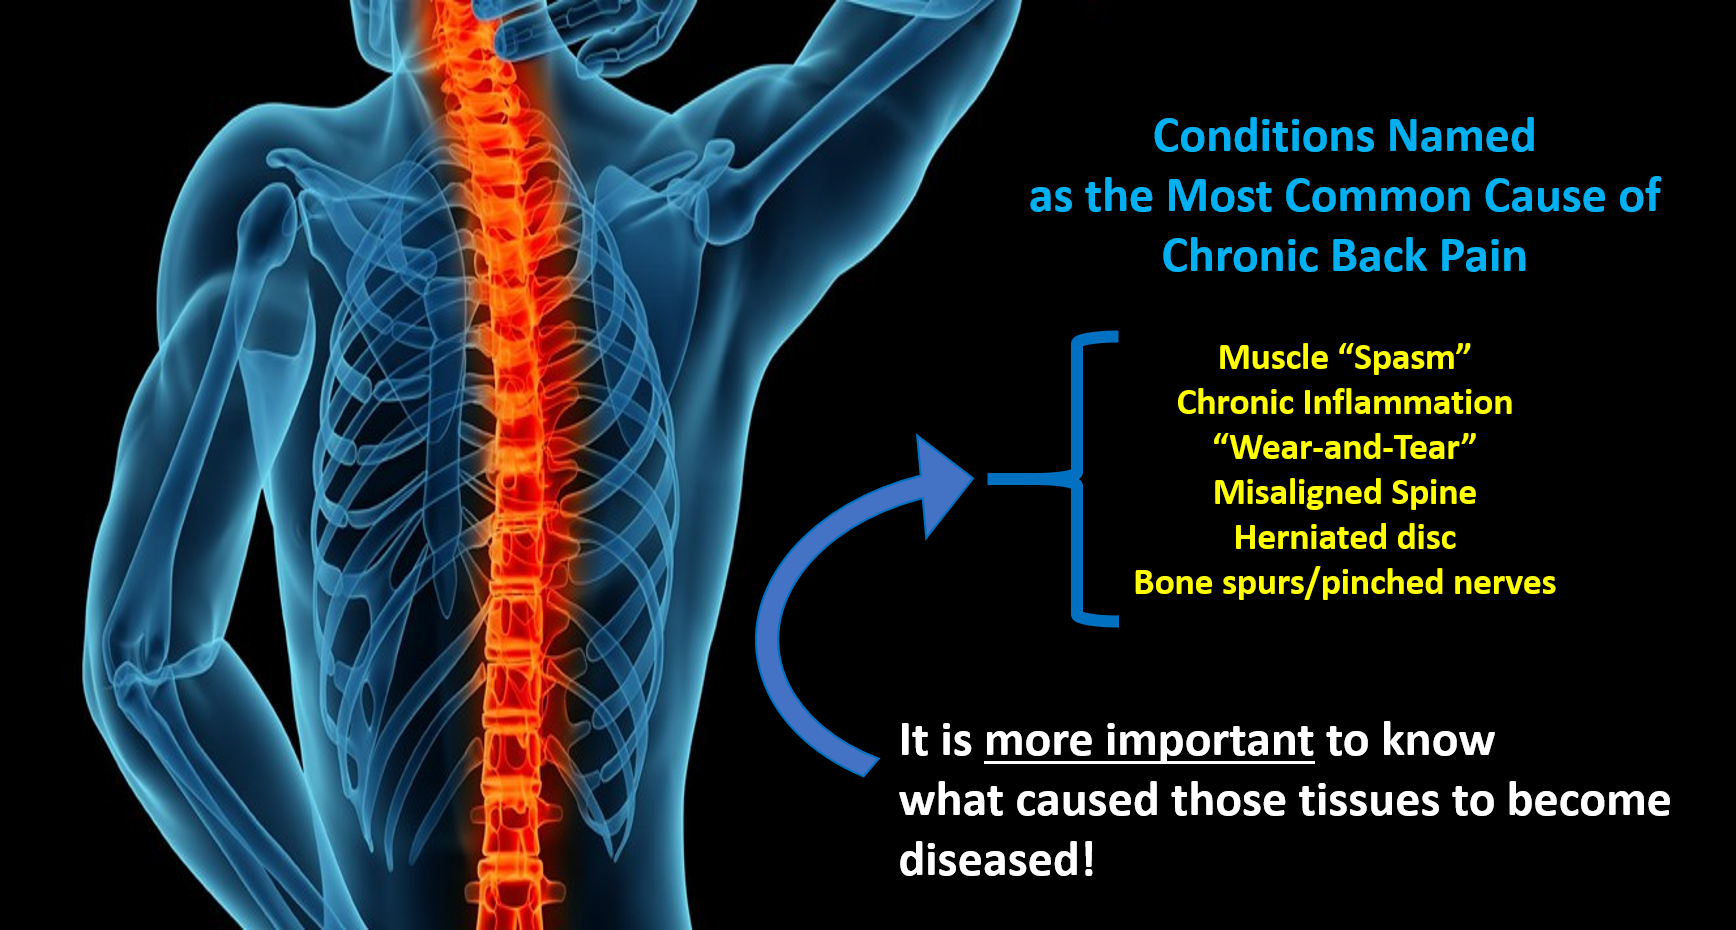 The most common cause of chronic back pain